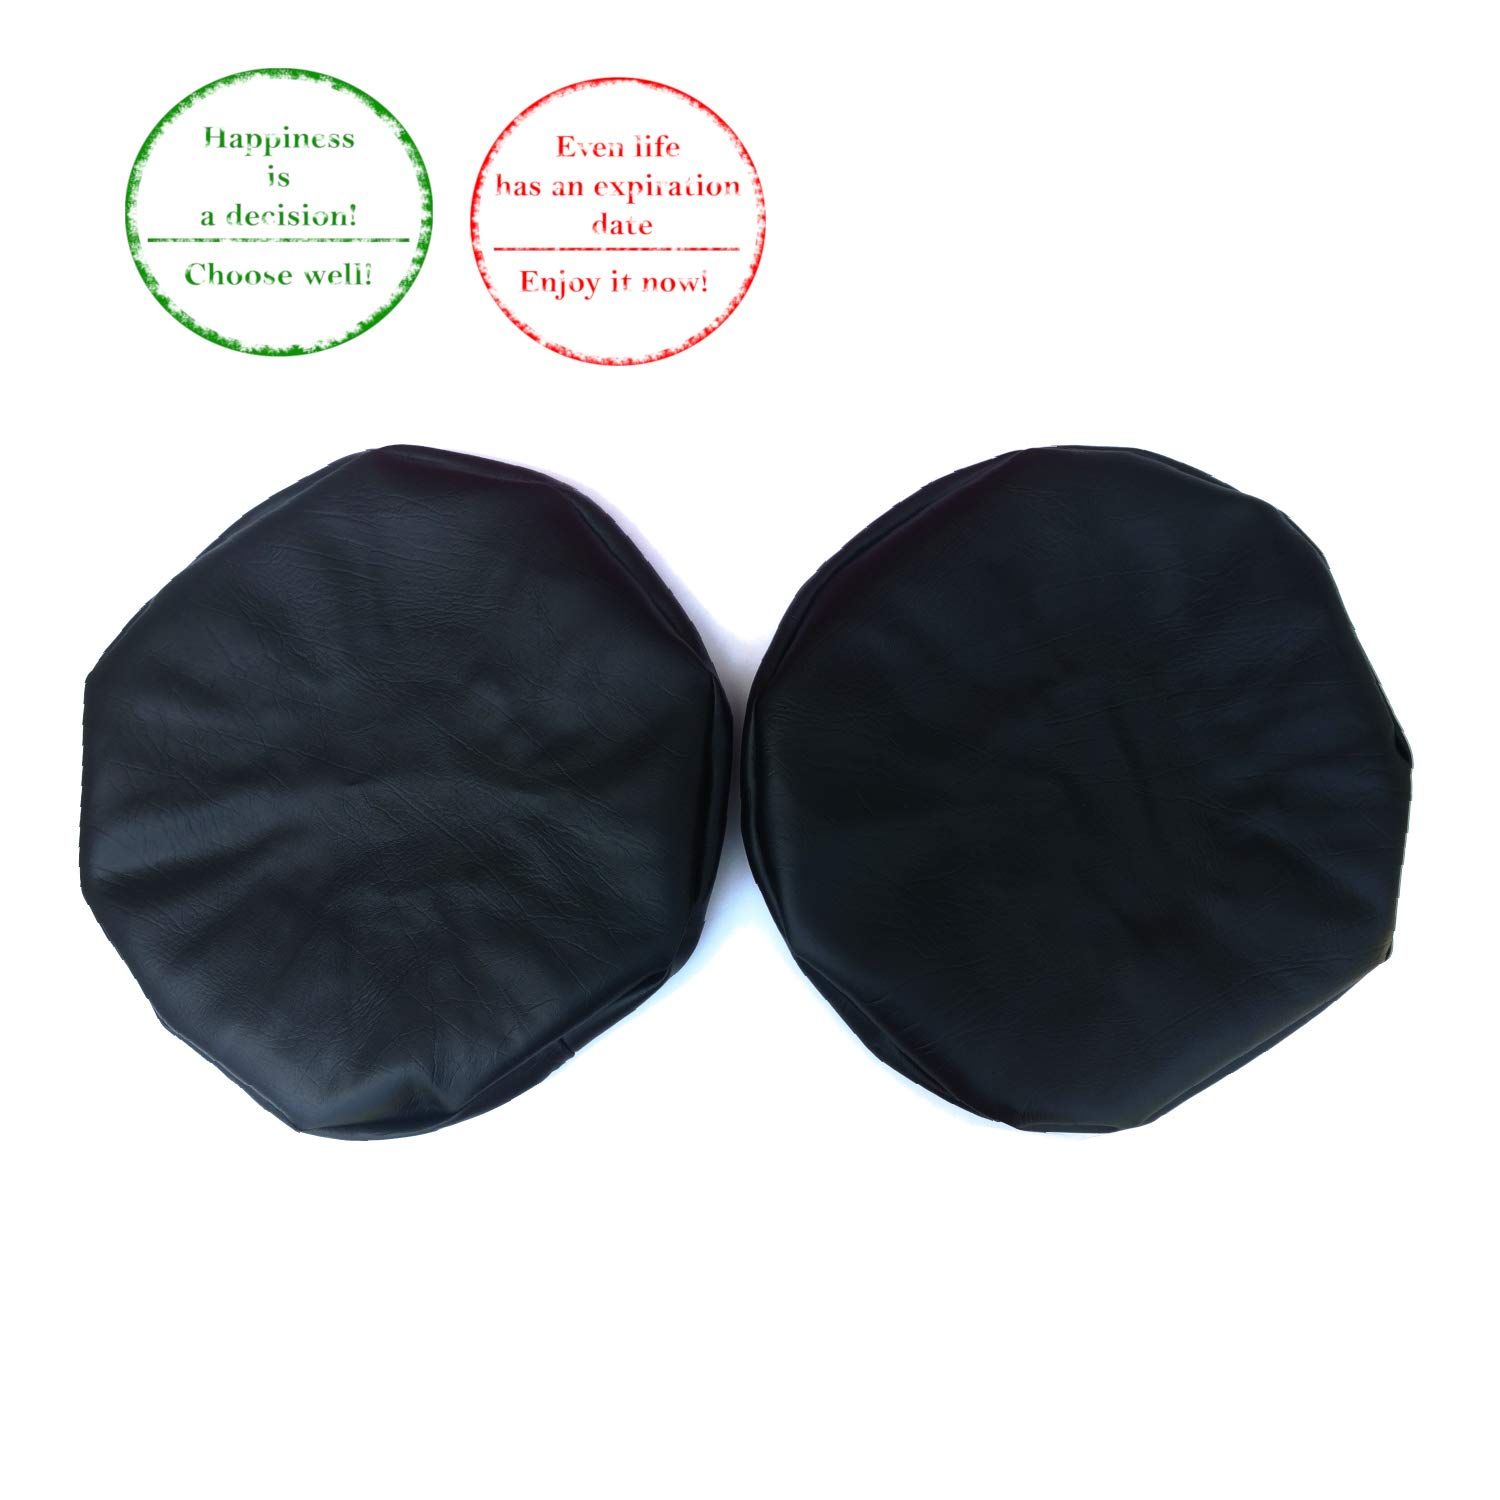 F&T Stool Covers | 2 Pack Bar Stool Cover by Royal Industries | Round 15 Inch Diameter Vinyl Black Bar Stool Covers with Elastic | Durable Bar Stool Seat Covers